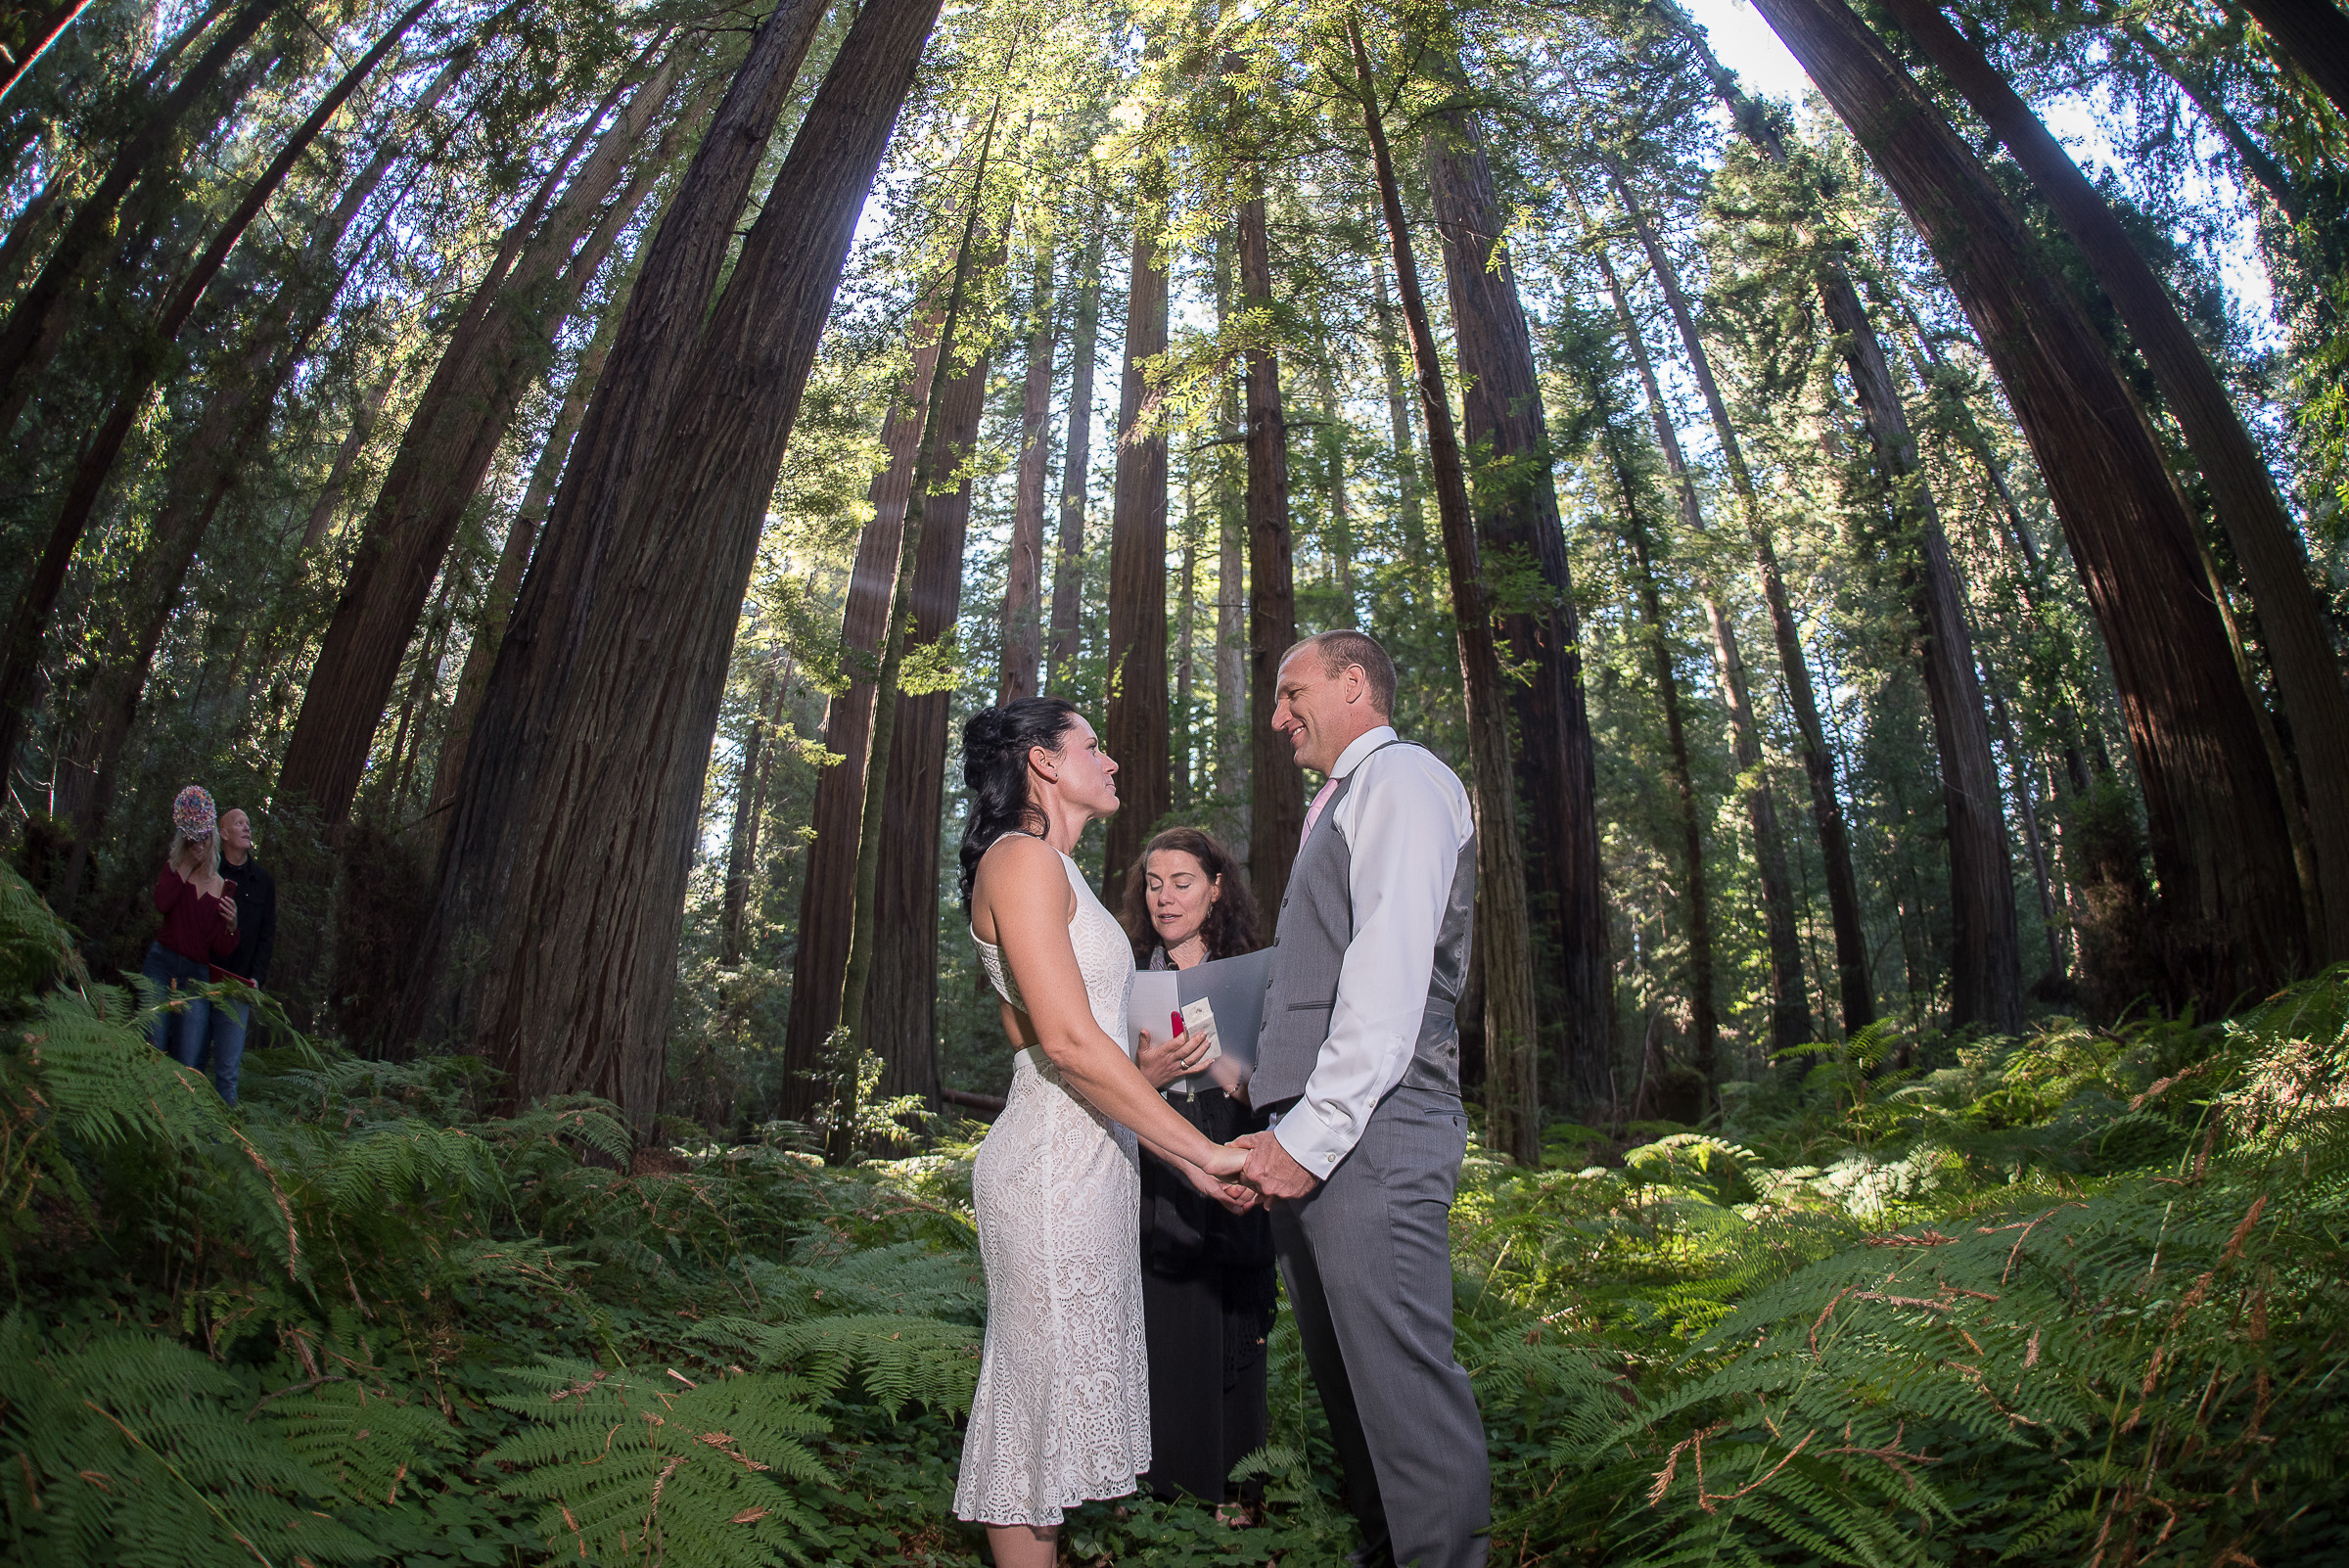 AVENUE OF THE GIANTS MAGICAL ELOPEMENT PARKYS PICS.JPG